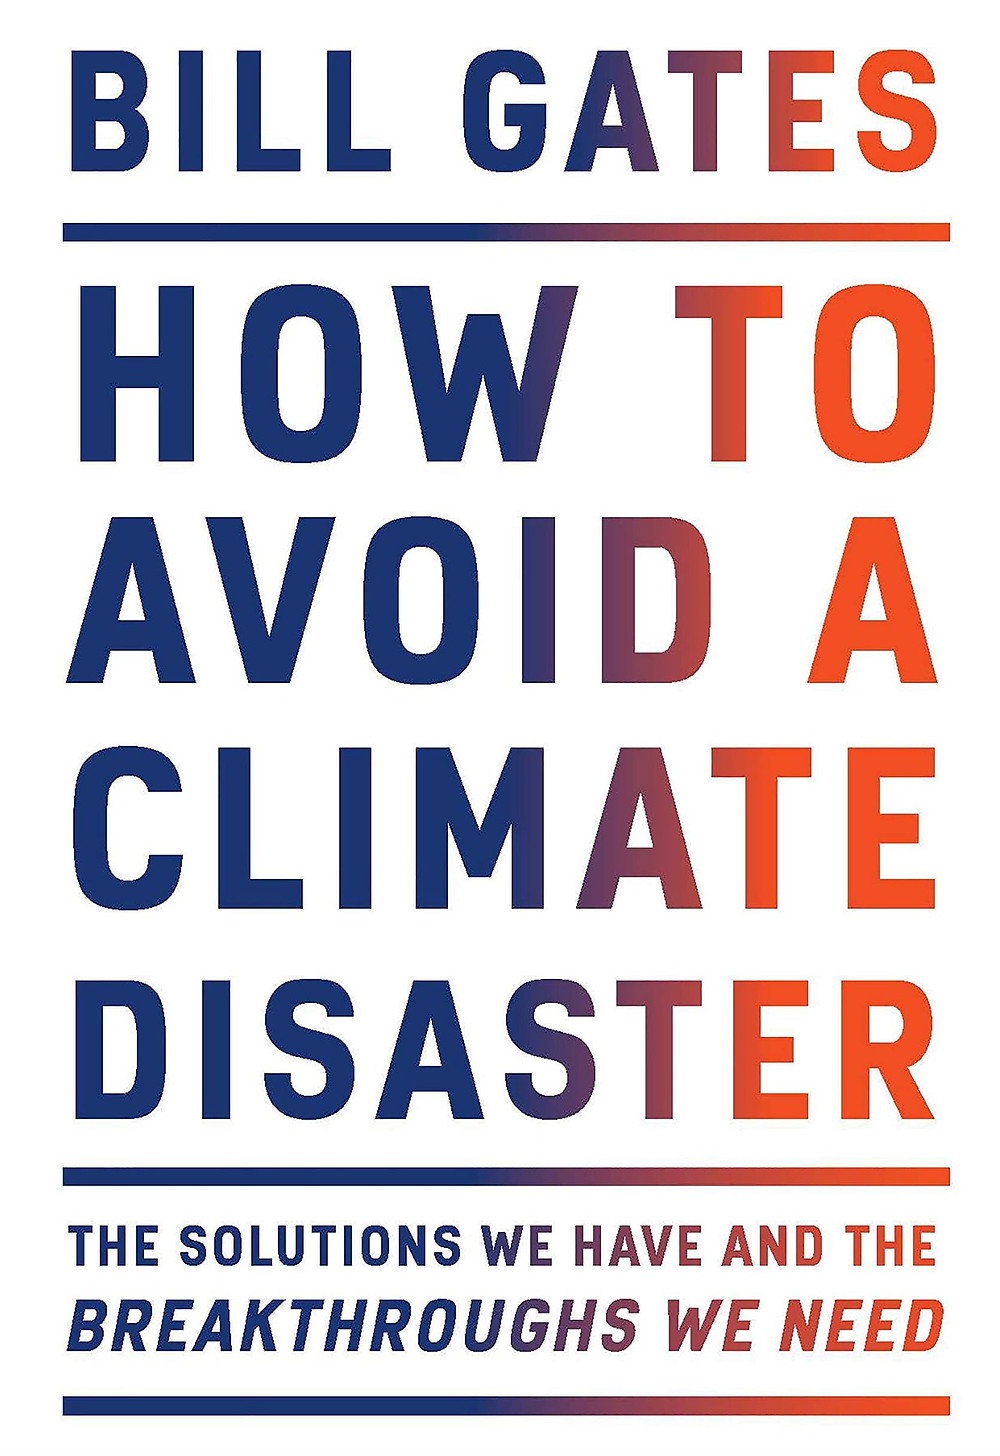 Cover of Bill Gates' book on How to Avoid a Climate Disaster